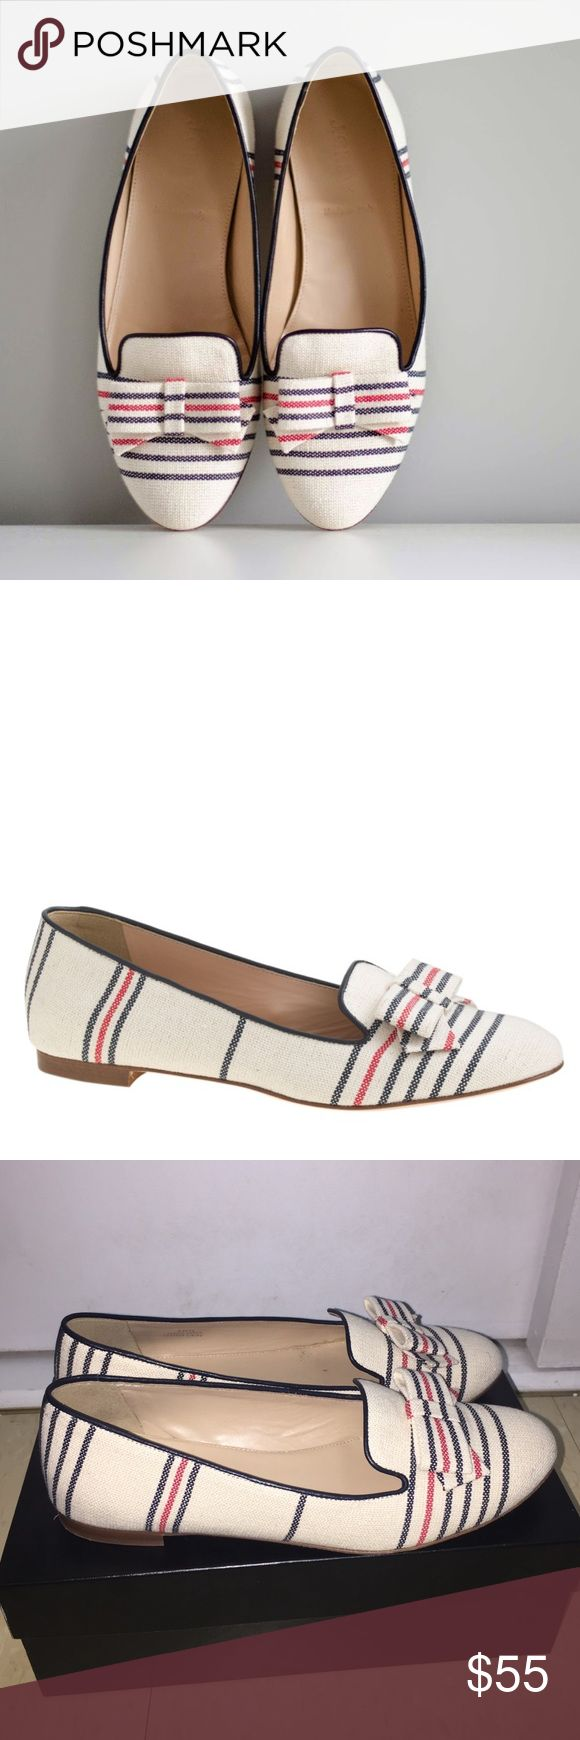 J.Crew Cleo Stripe Canvas Loafers in Sandy Reef A feminine spin on the classic gentleman's smoking slipper. We recast it in a slimmer, more flattering silhouette in our signature prints and colors.  Cotton/acrylic/poly upper. Leather lining and sole. Made in Italy. Worn once, in like-new condition J. Crew Shoes Flats & Loafers